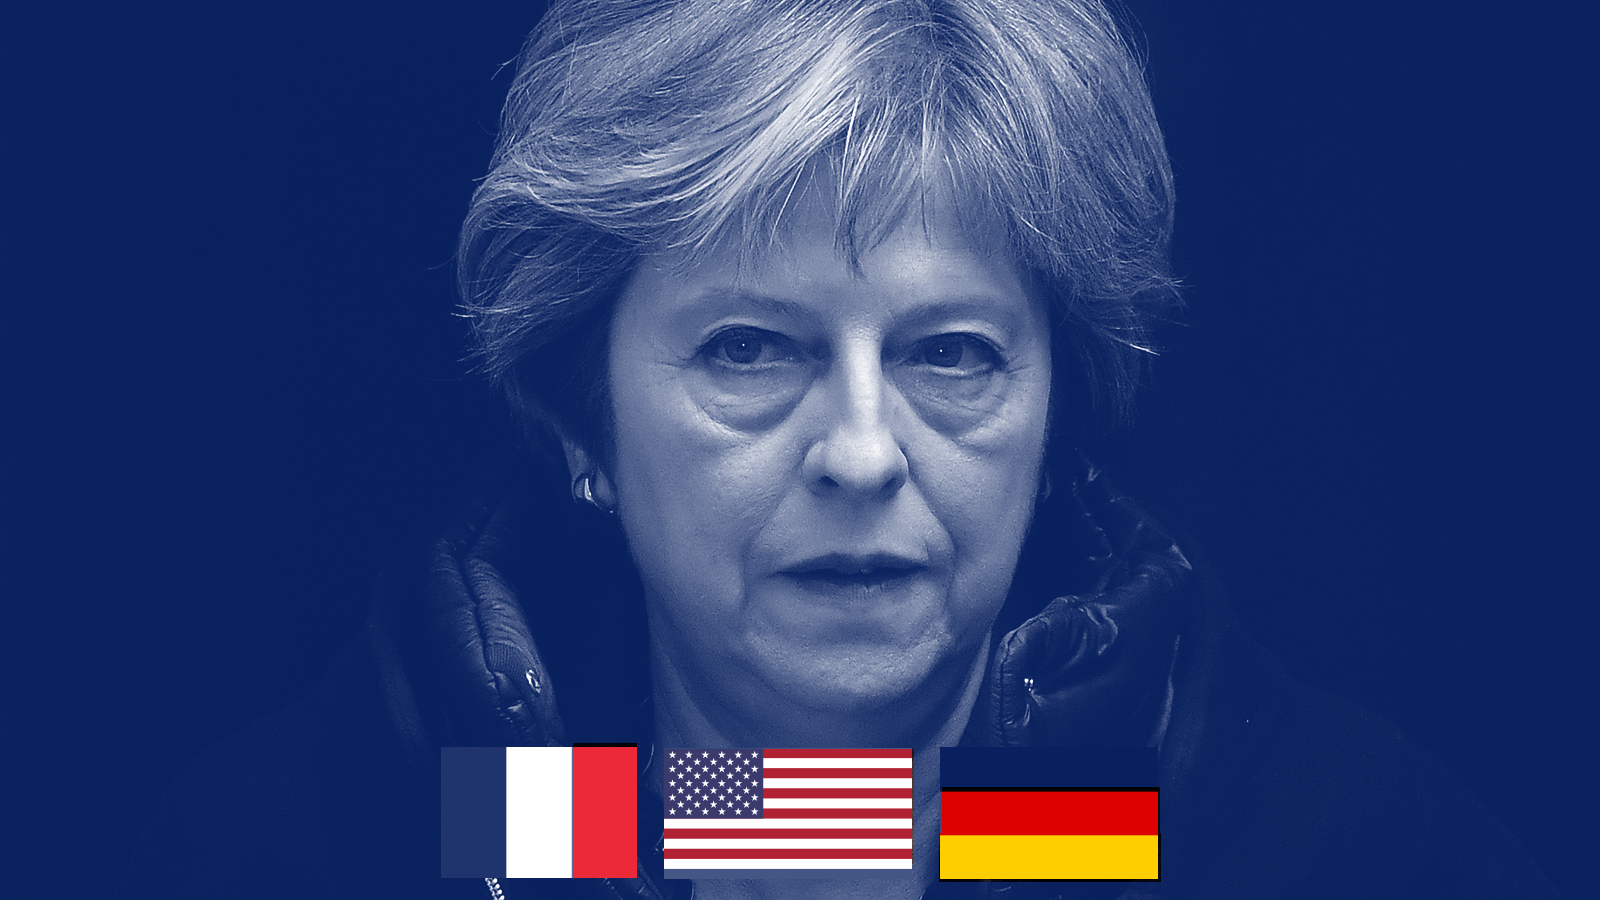 theresamay-flag.jpg